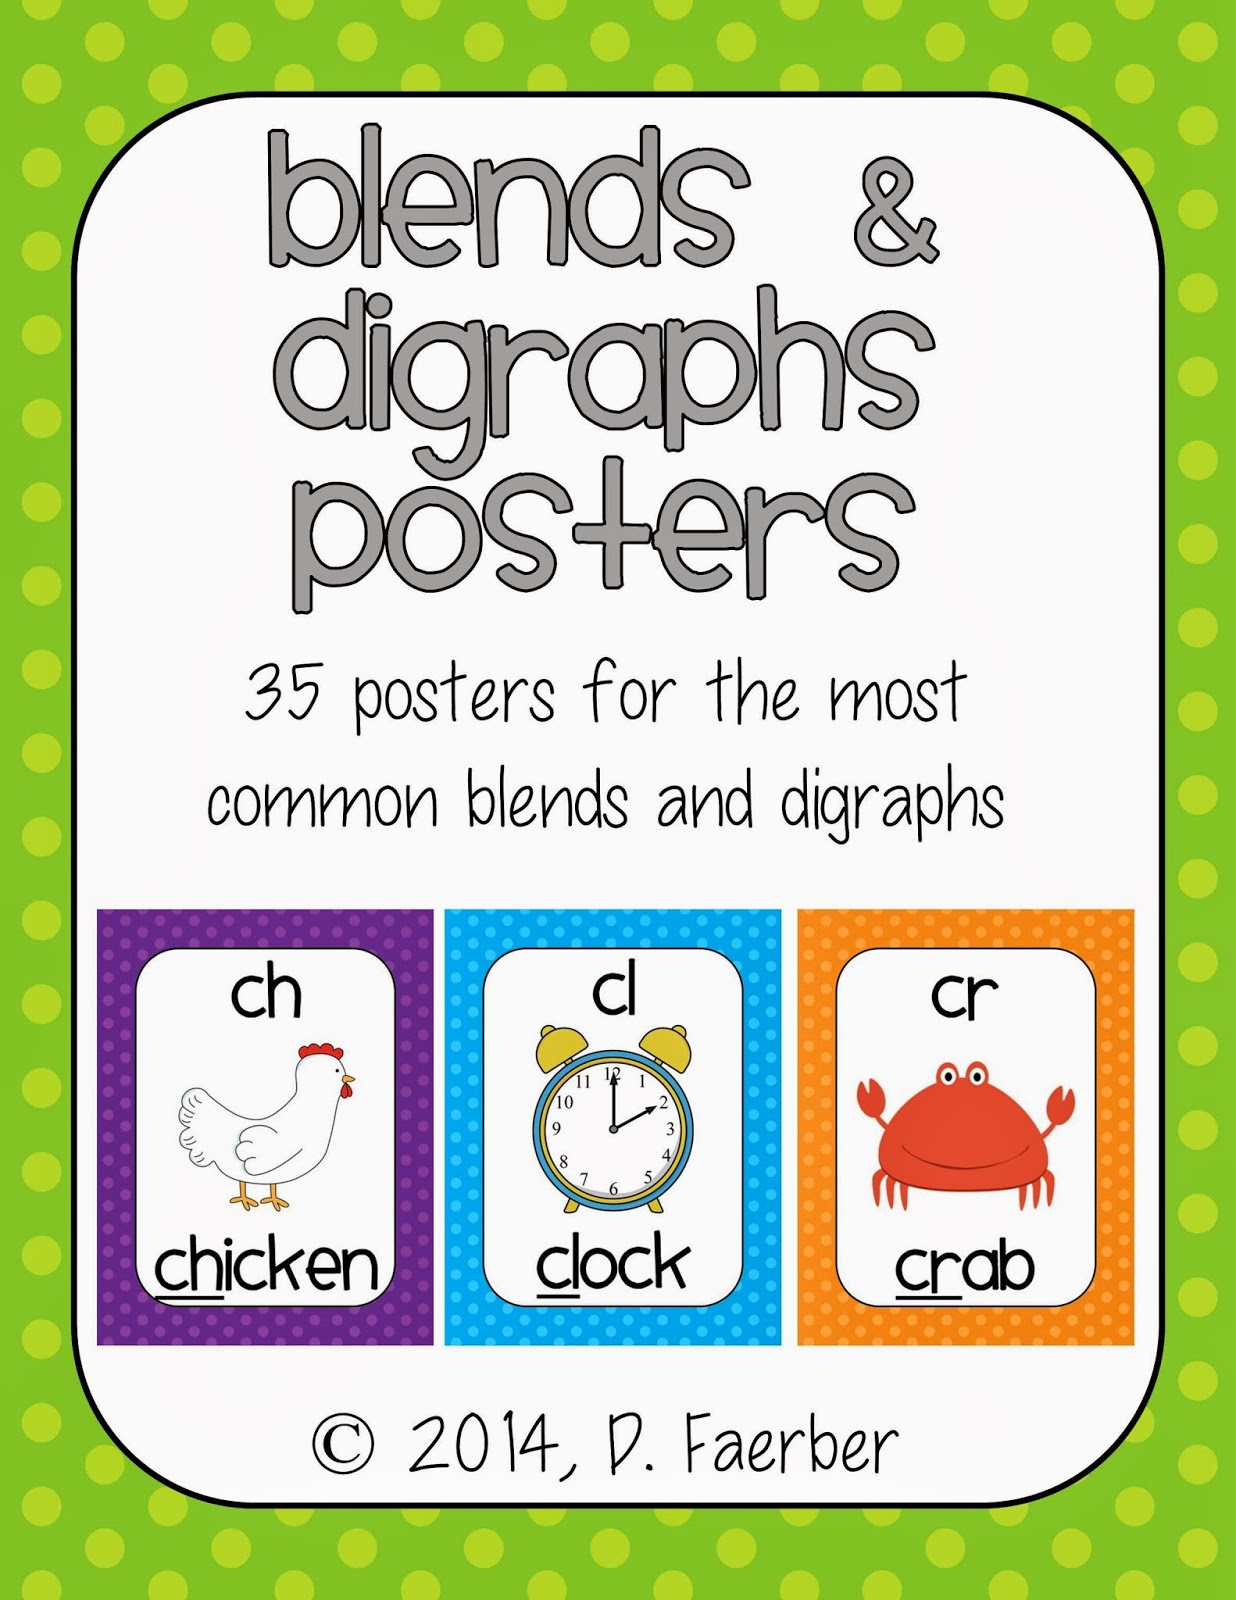 http://www.teacherspayteachers.com/Product/Blends-and-Digraphs-Posters-in-Polka-Dots-1087336